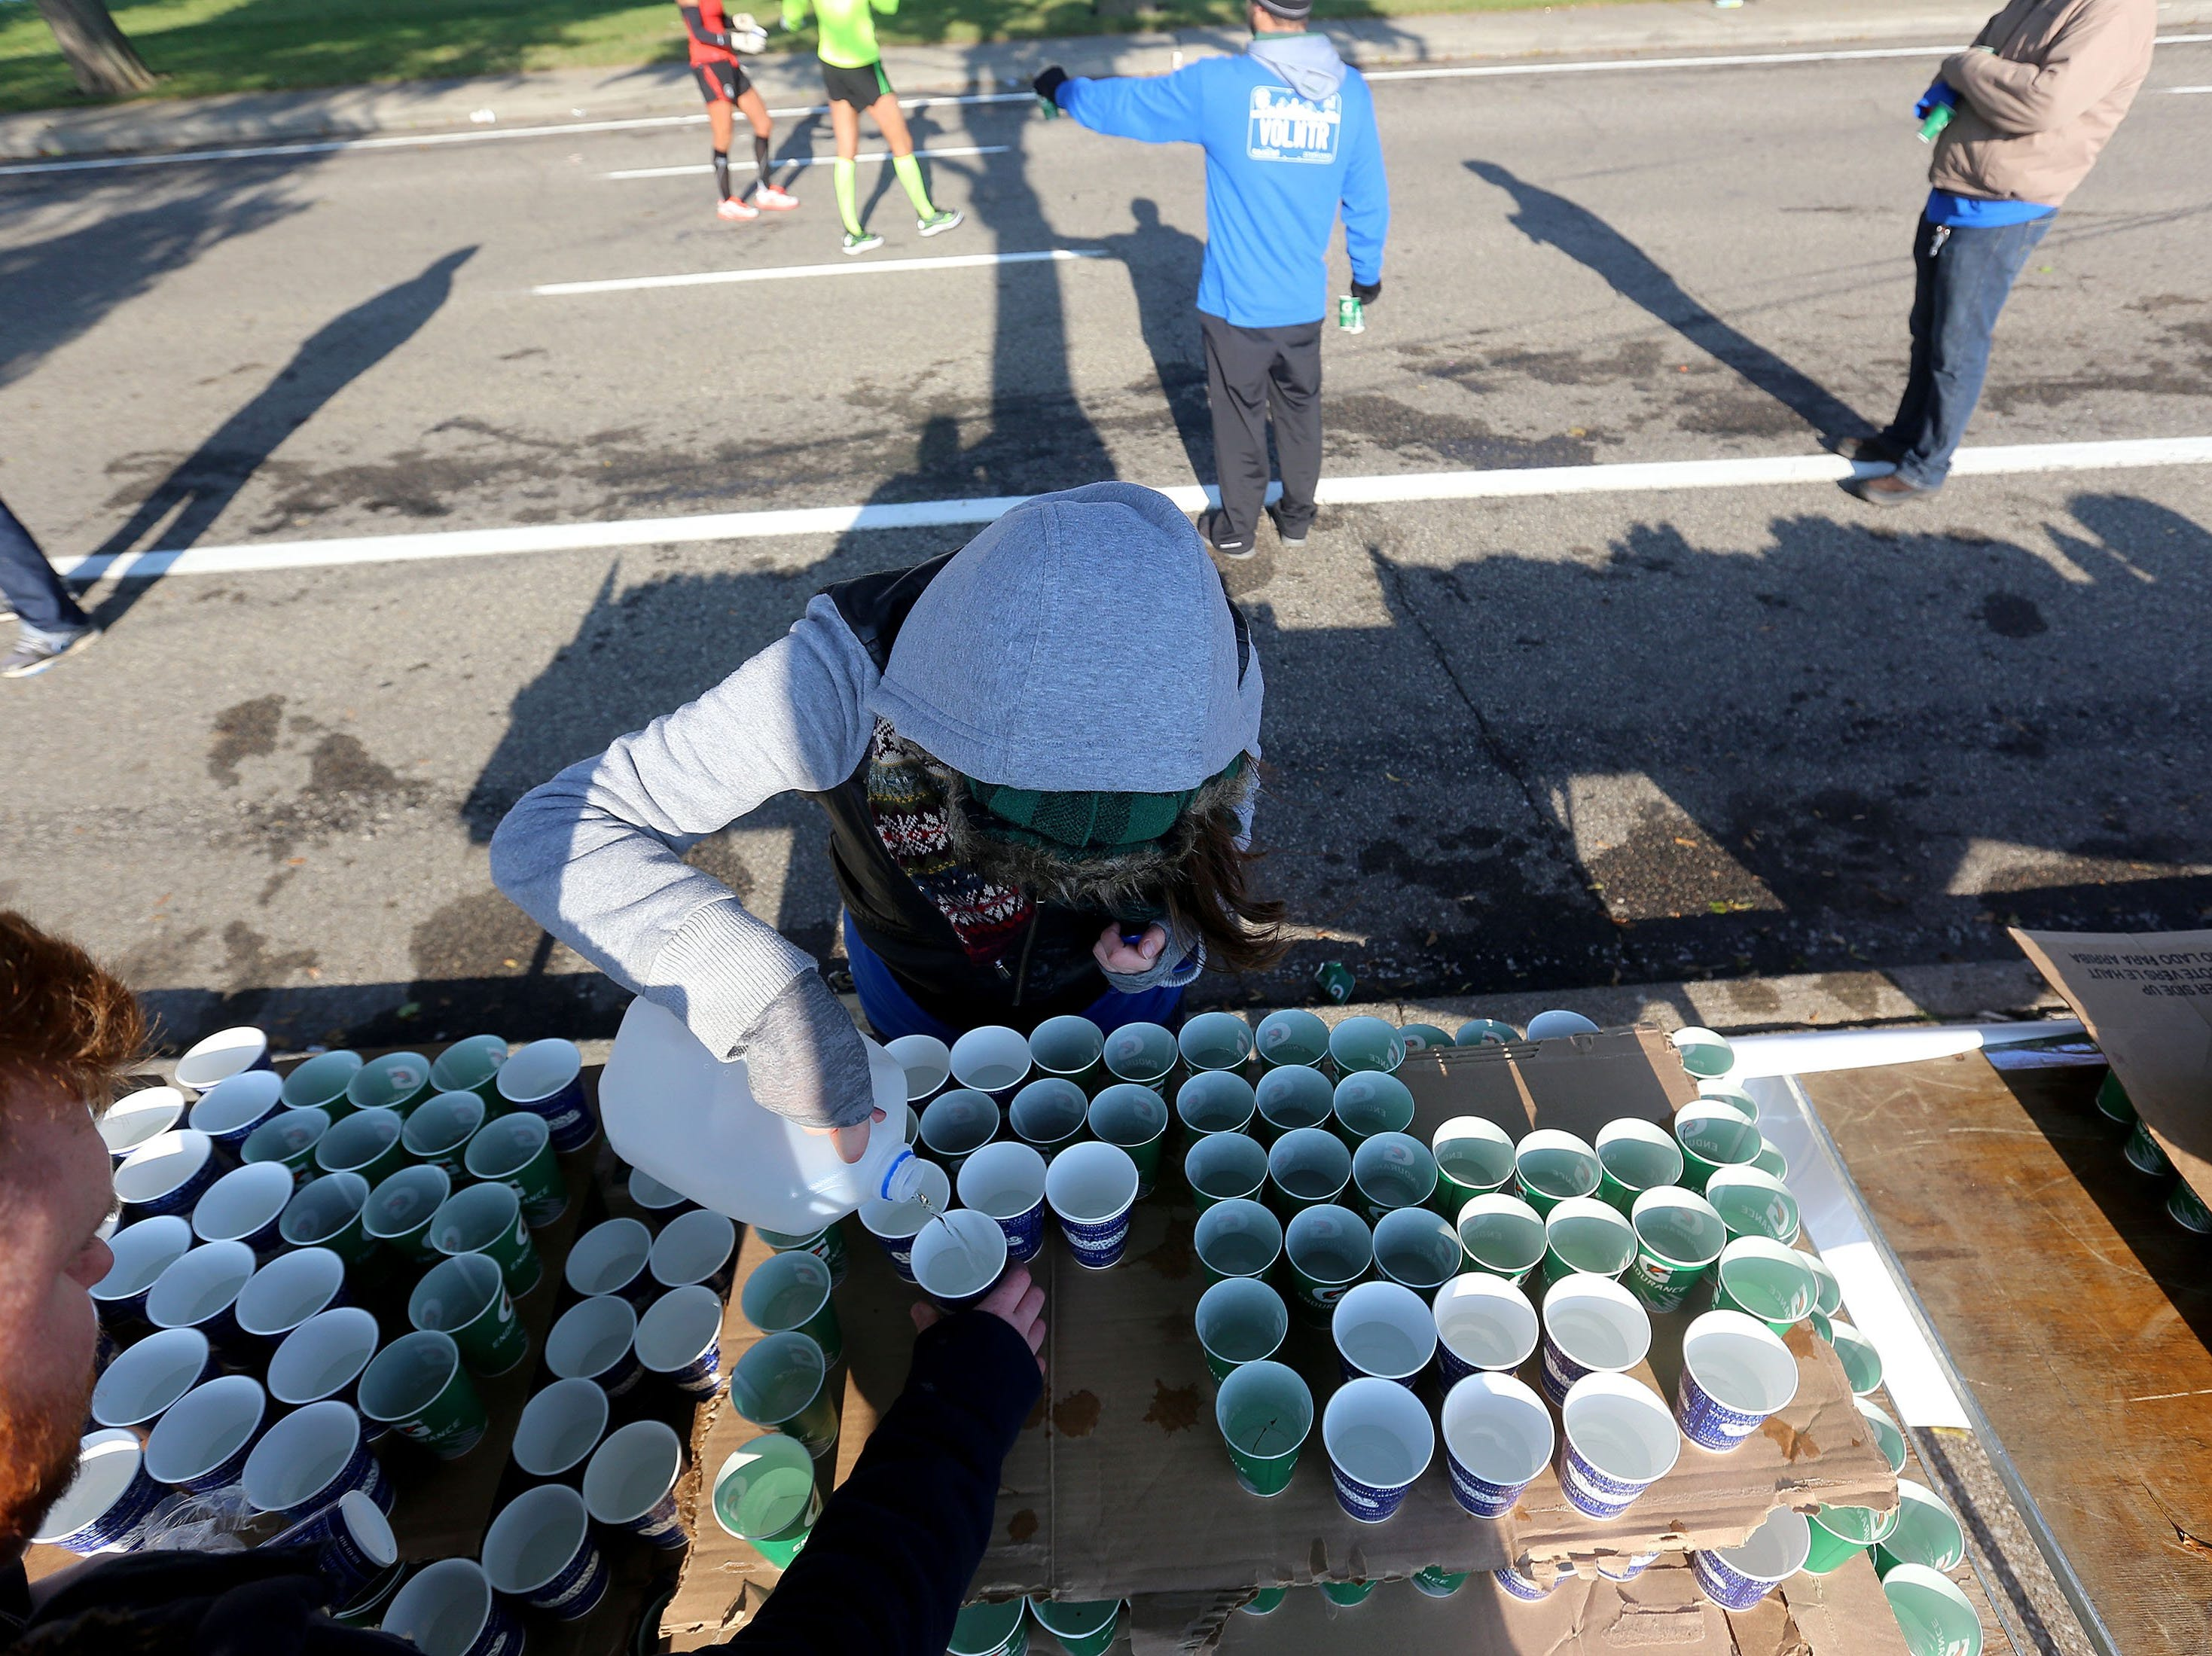 Volunteers hand out water to thirsty runners on Belle Isle during the 36th Annual Detroit Free Press/Talmer Bank Marathon in Detroit on Sunday, Oct. 20, 2013.